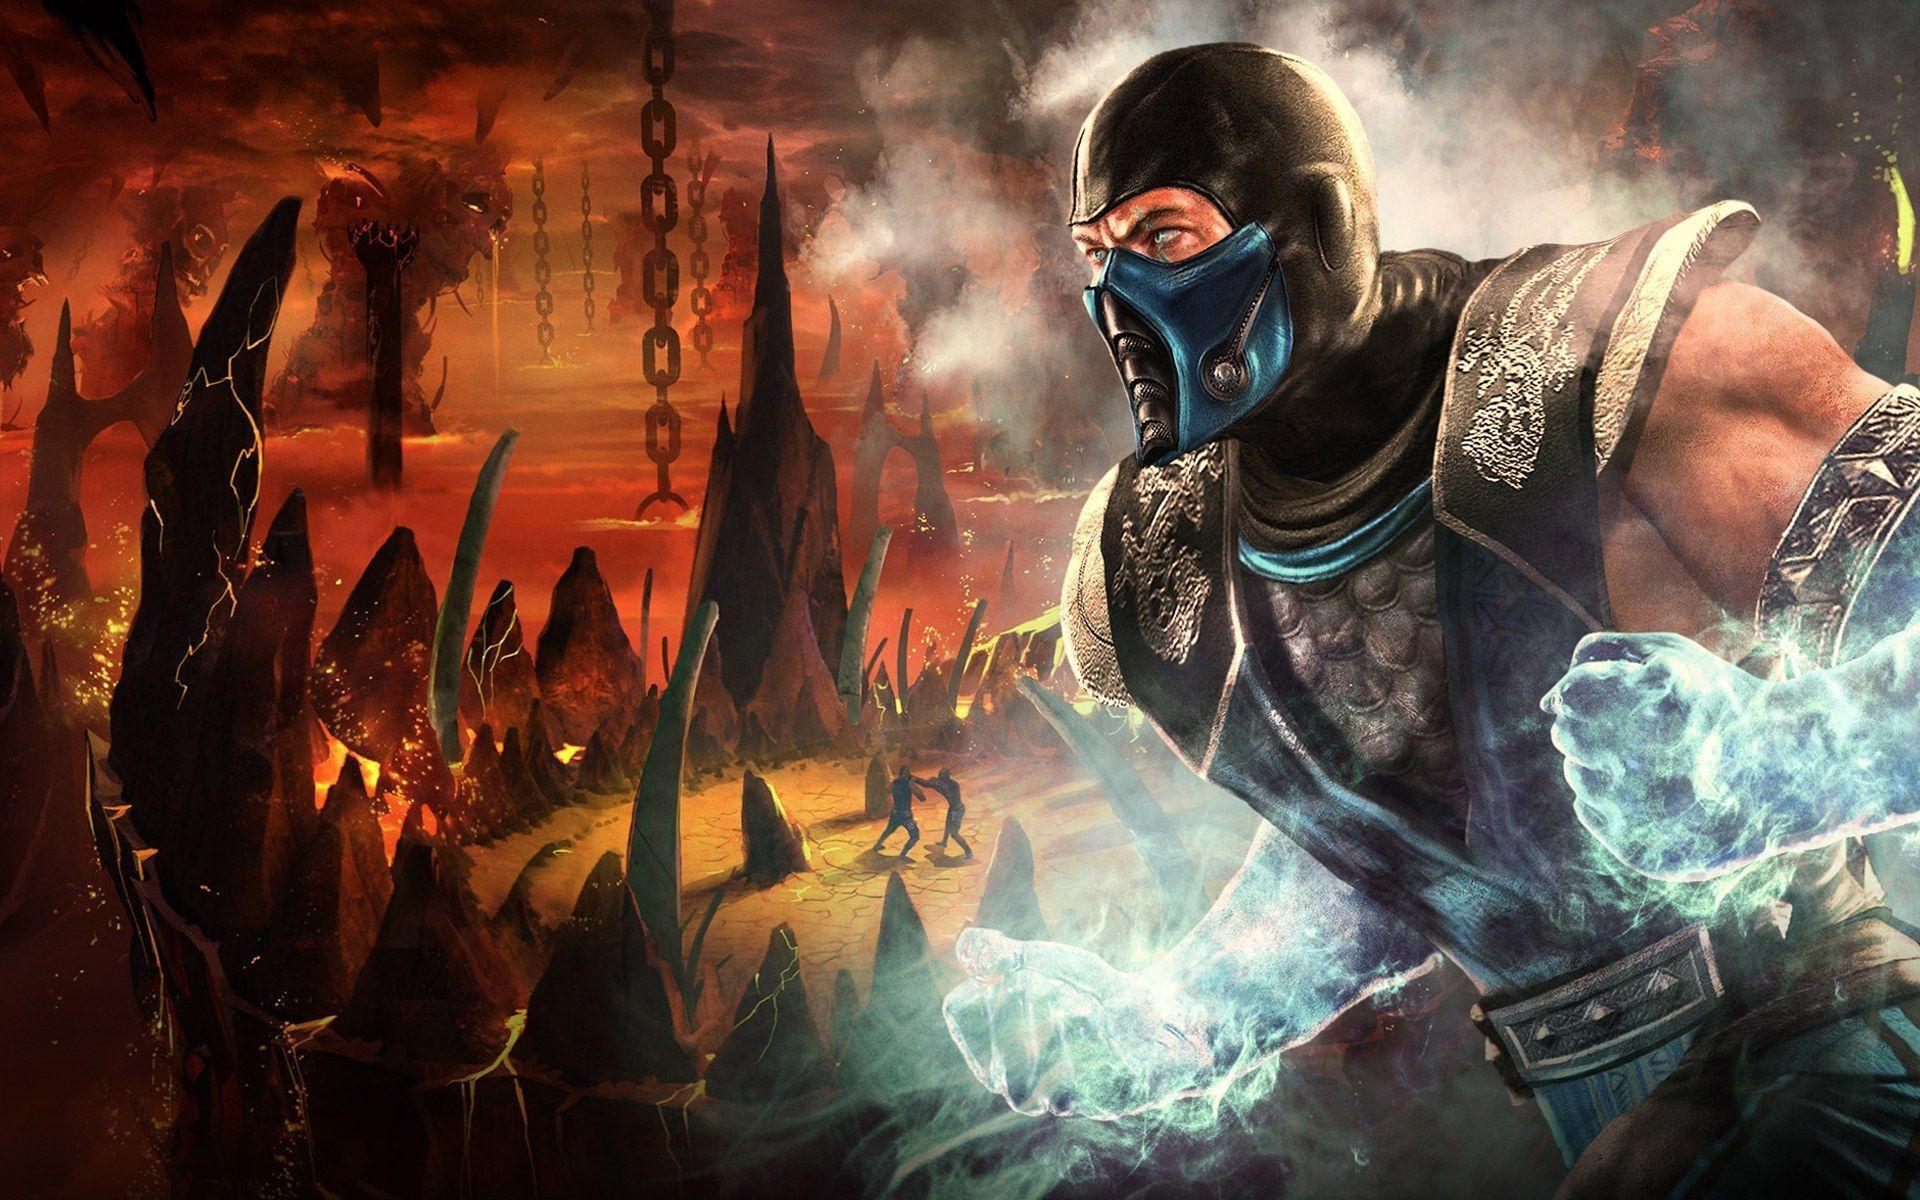 increibles wallpapers y gifs mortal kombat [Megapost]